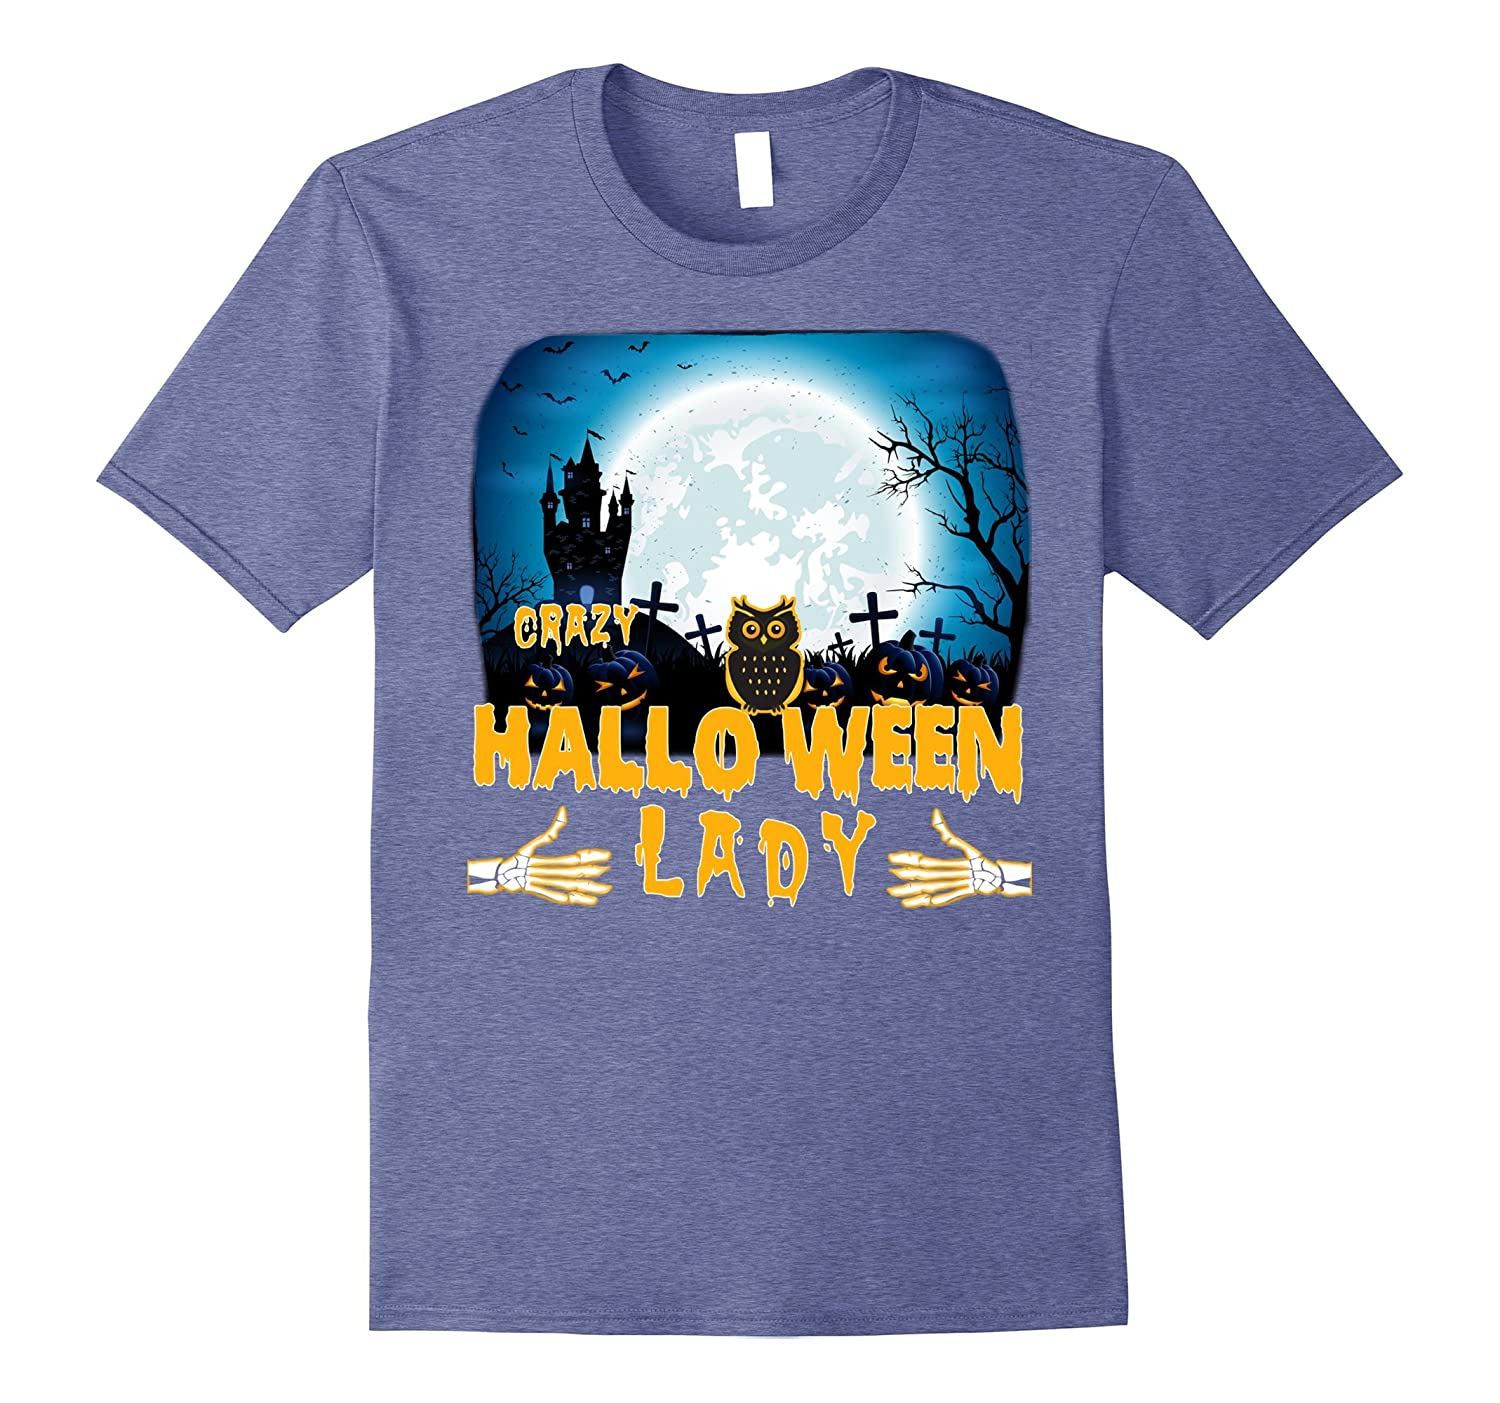 Crazy Halloween Decorations: Crazy Halloween Lady T-shirts-Art